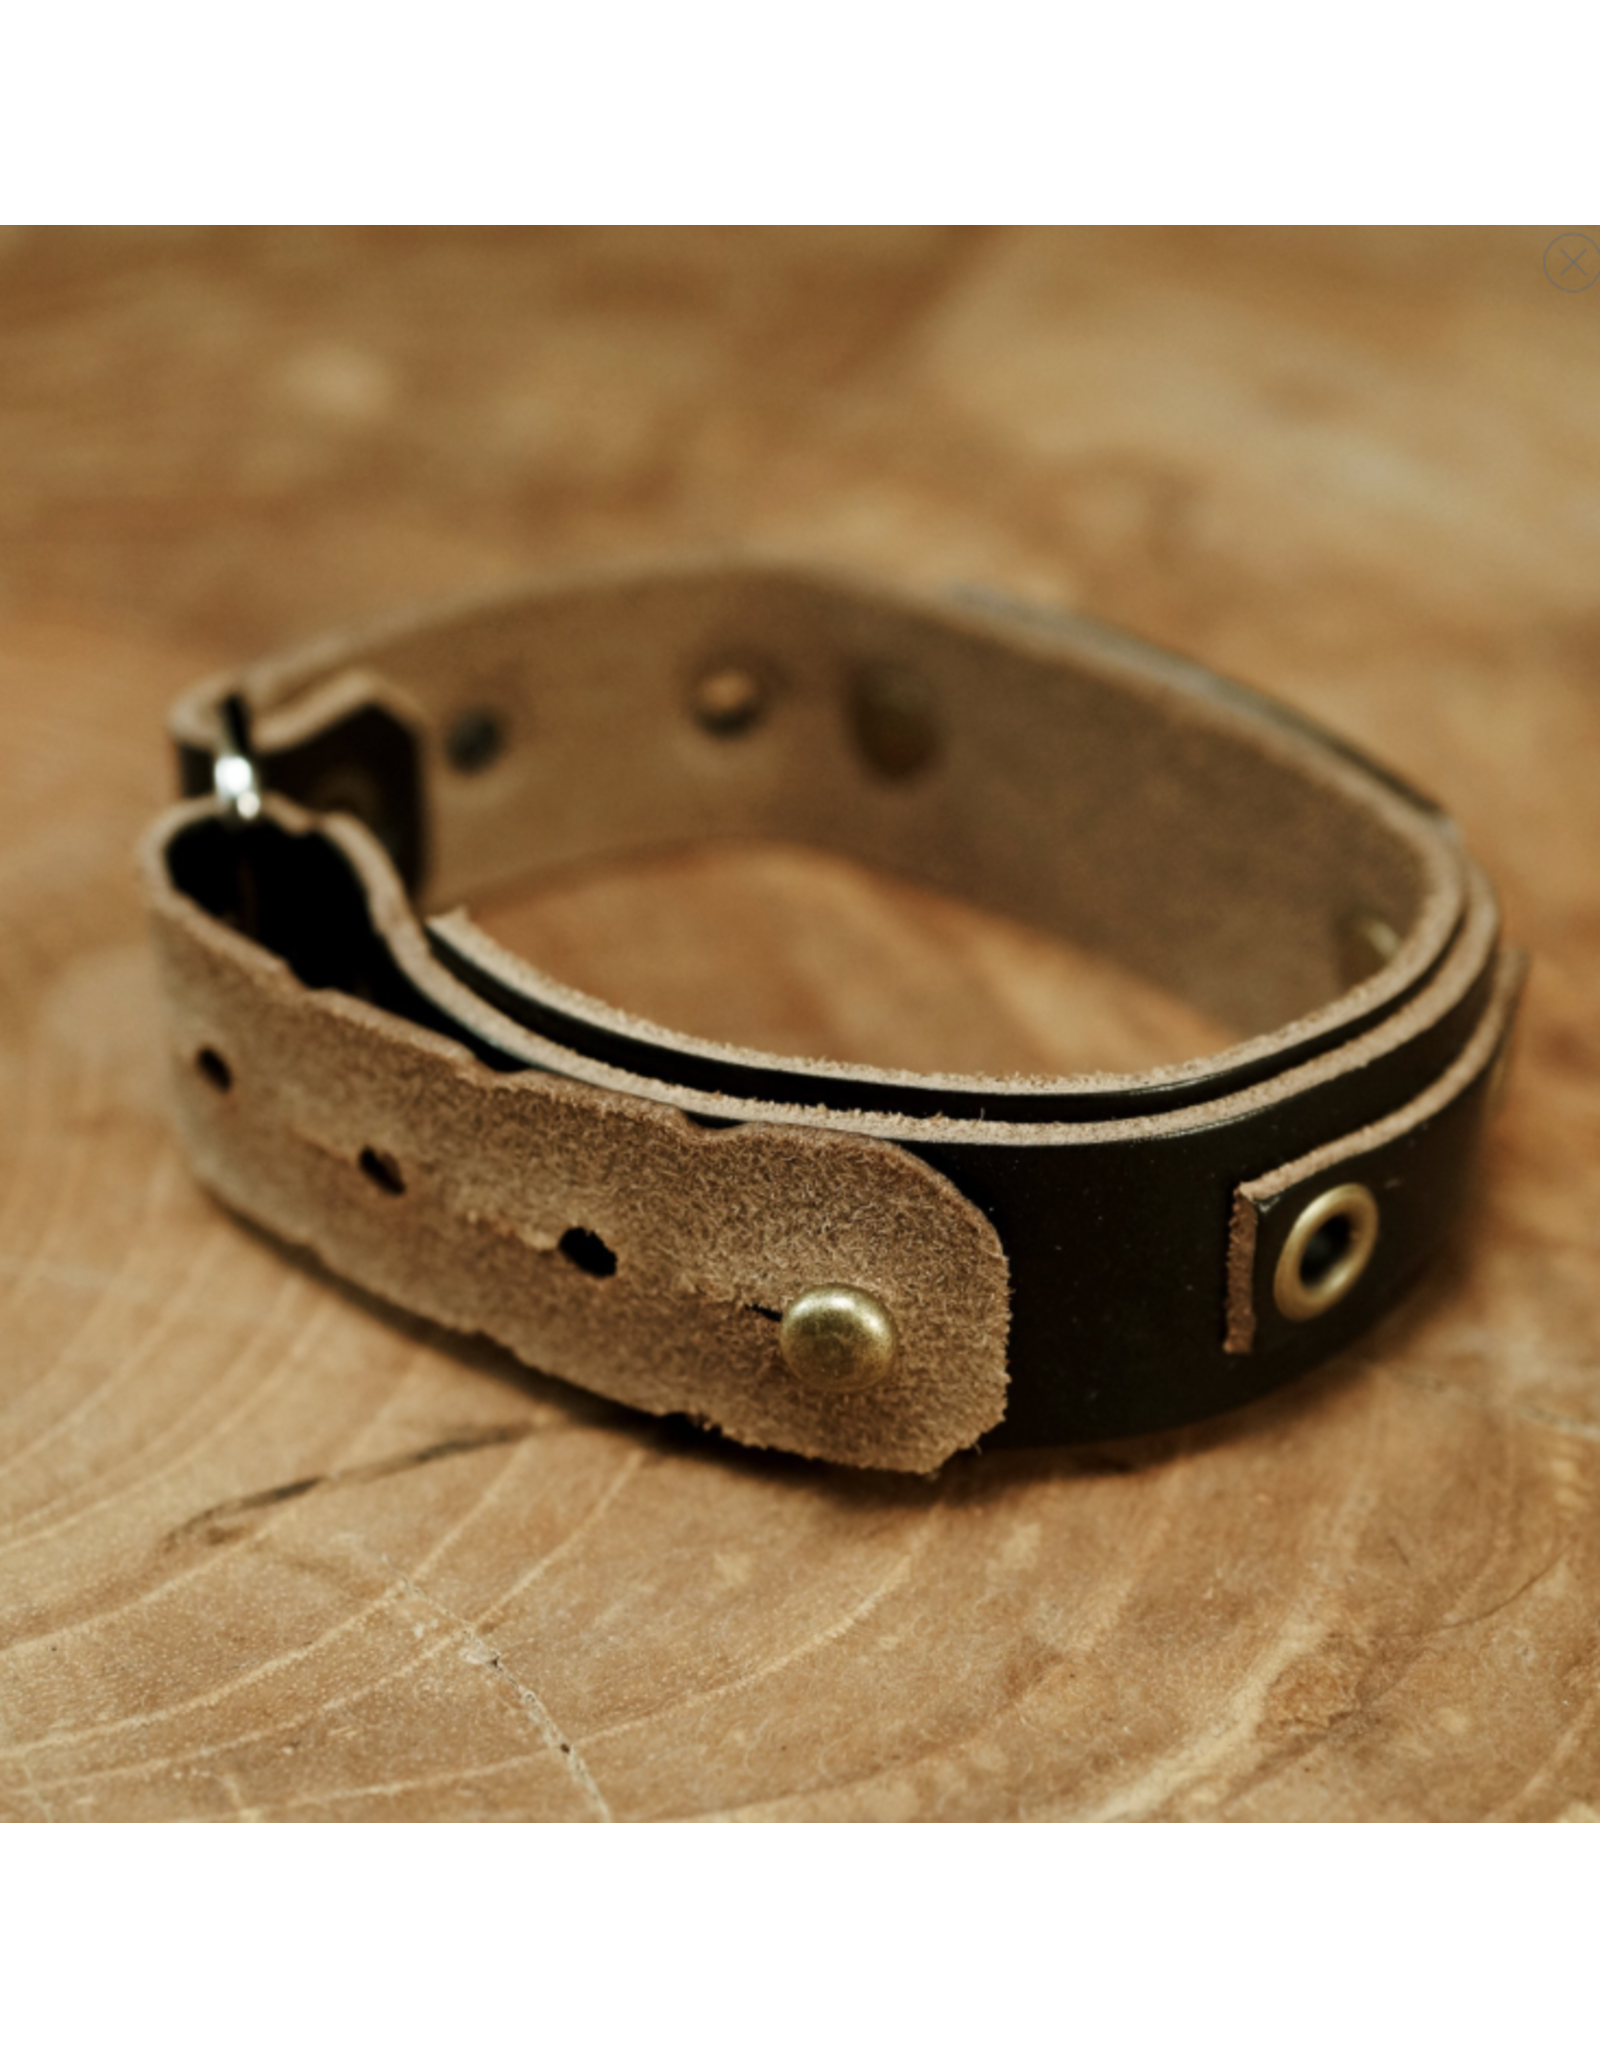 Sightline Sightline Dry Fly 2.0 Leather Bracelet